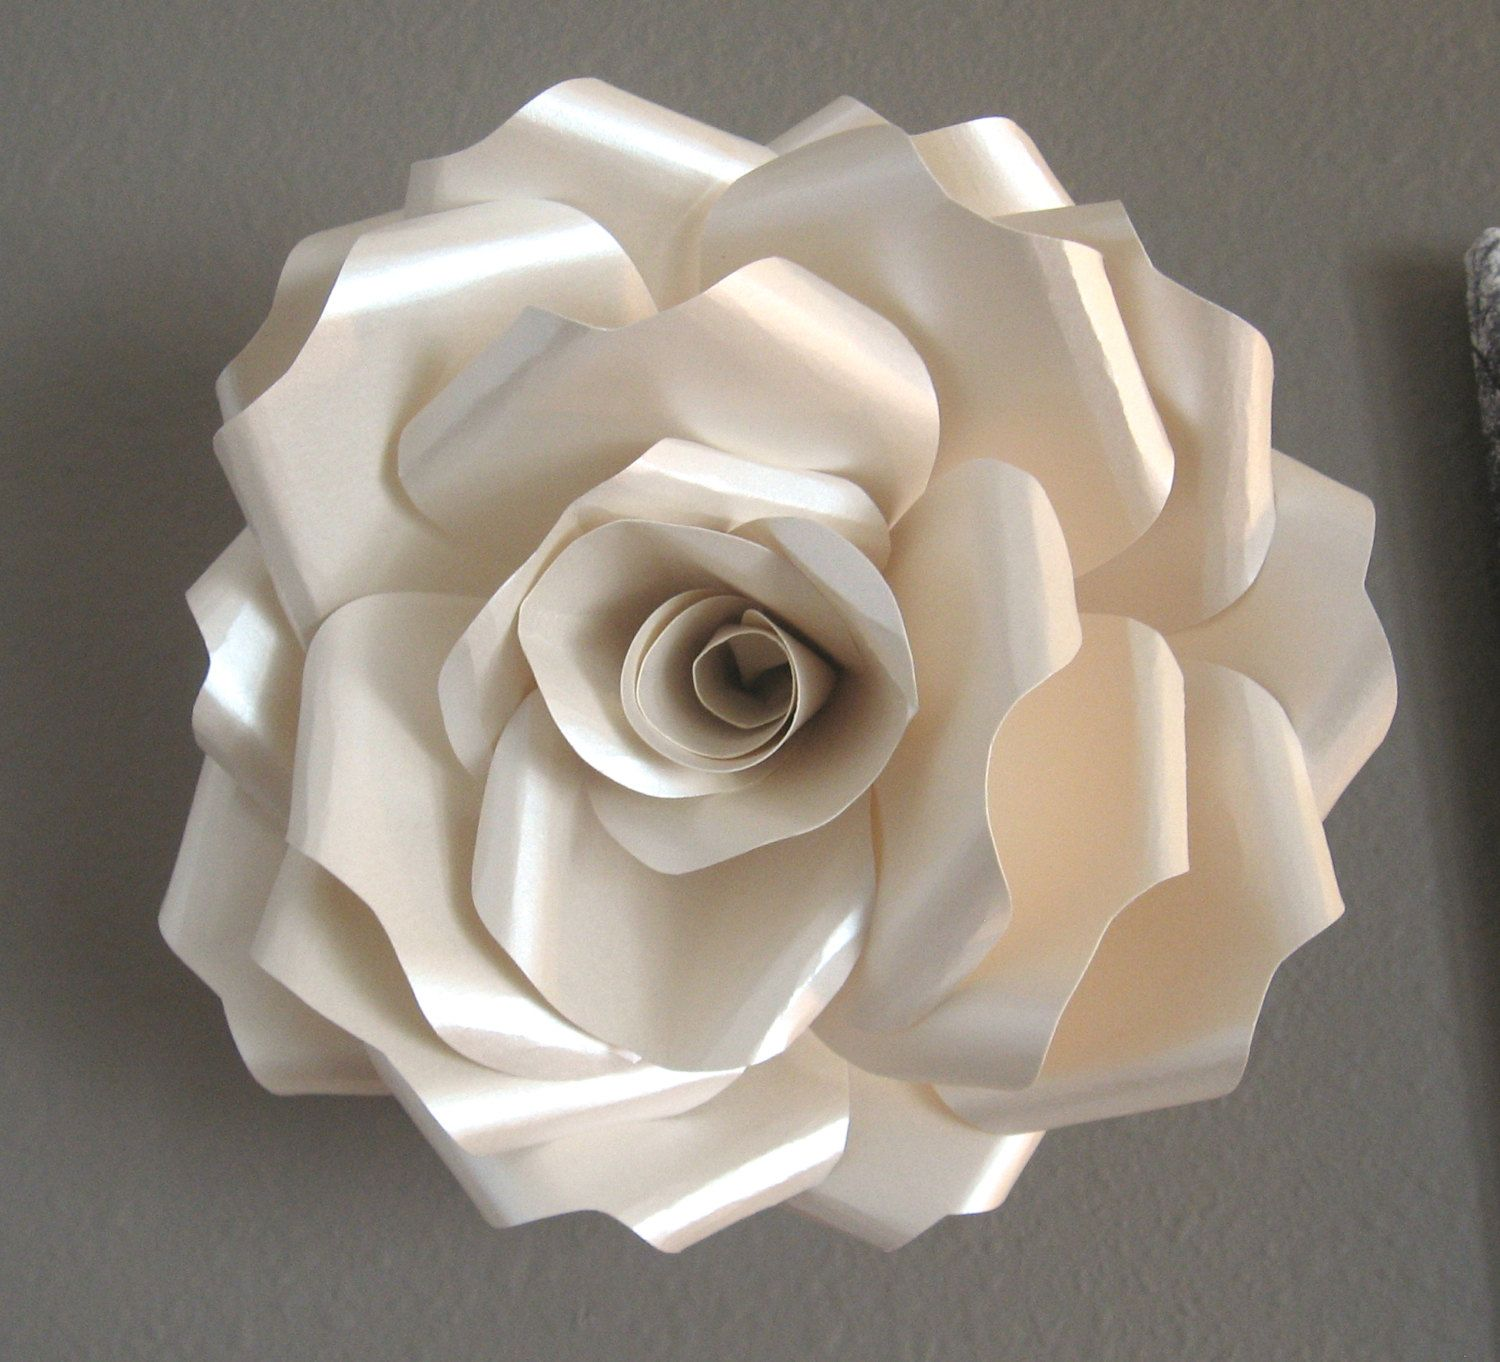 Faerie ivory opal paper wall rose wall art paper sculpture faerie ivory opal paper wall rose wall art paper sculpture flower taxidermy no dhlflorist Images